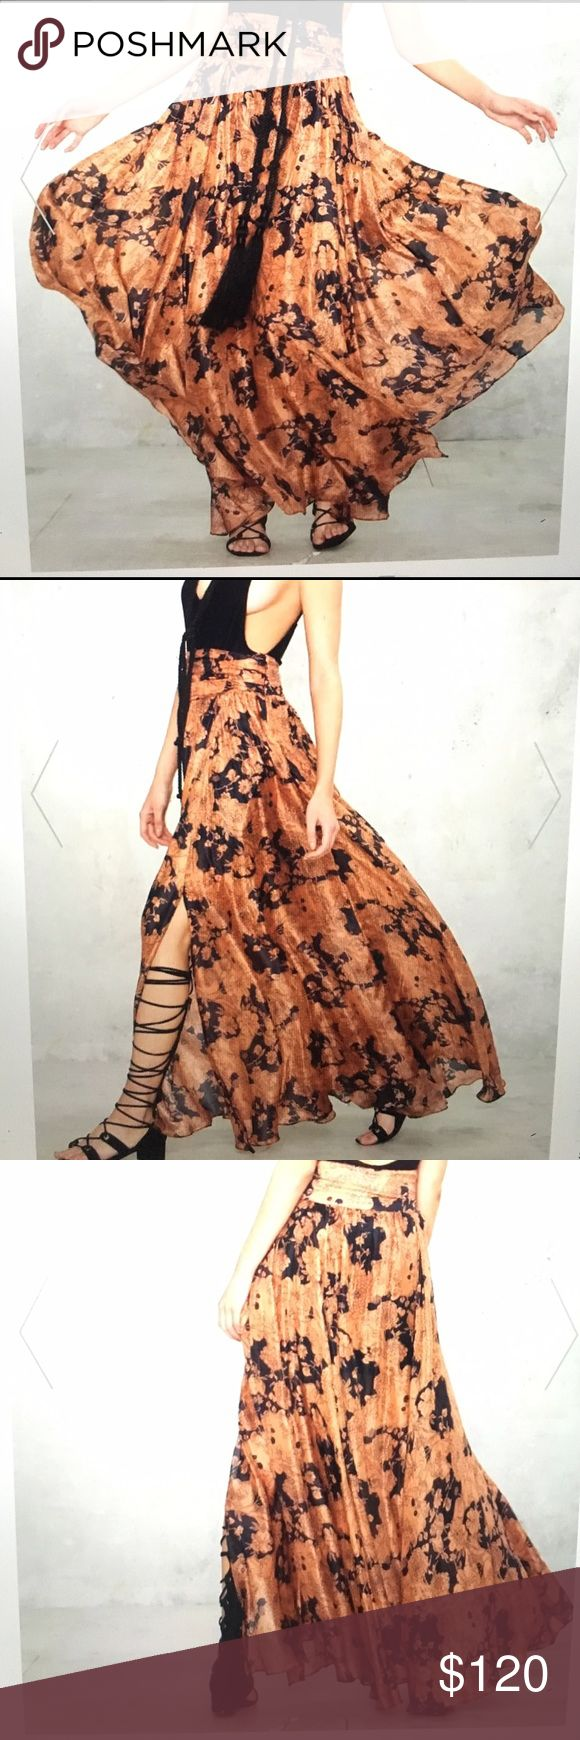 Summer Nights SiLK skirt This skirt is made in SiLK and features a navy and peach floral print. Enclosed zipper and lit at side.. high waisted fit and full maxi silhouette. Fully lined. Looks amazing with body suit or plunging bra top. Never worn!! By Nast Gal Nasty Gal Dresses Maxi